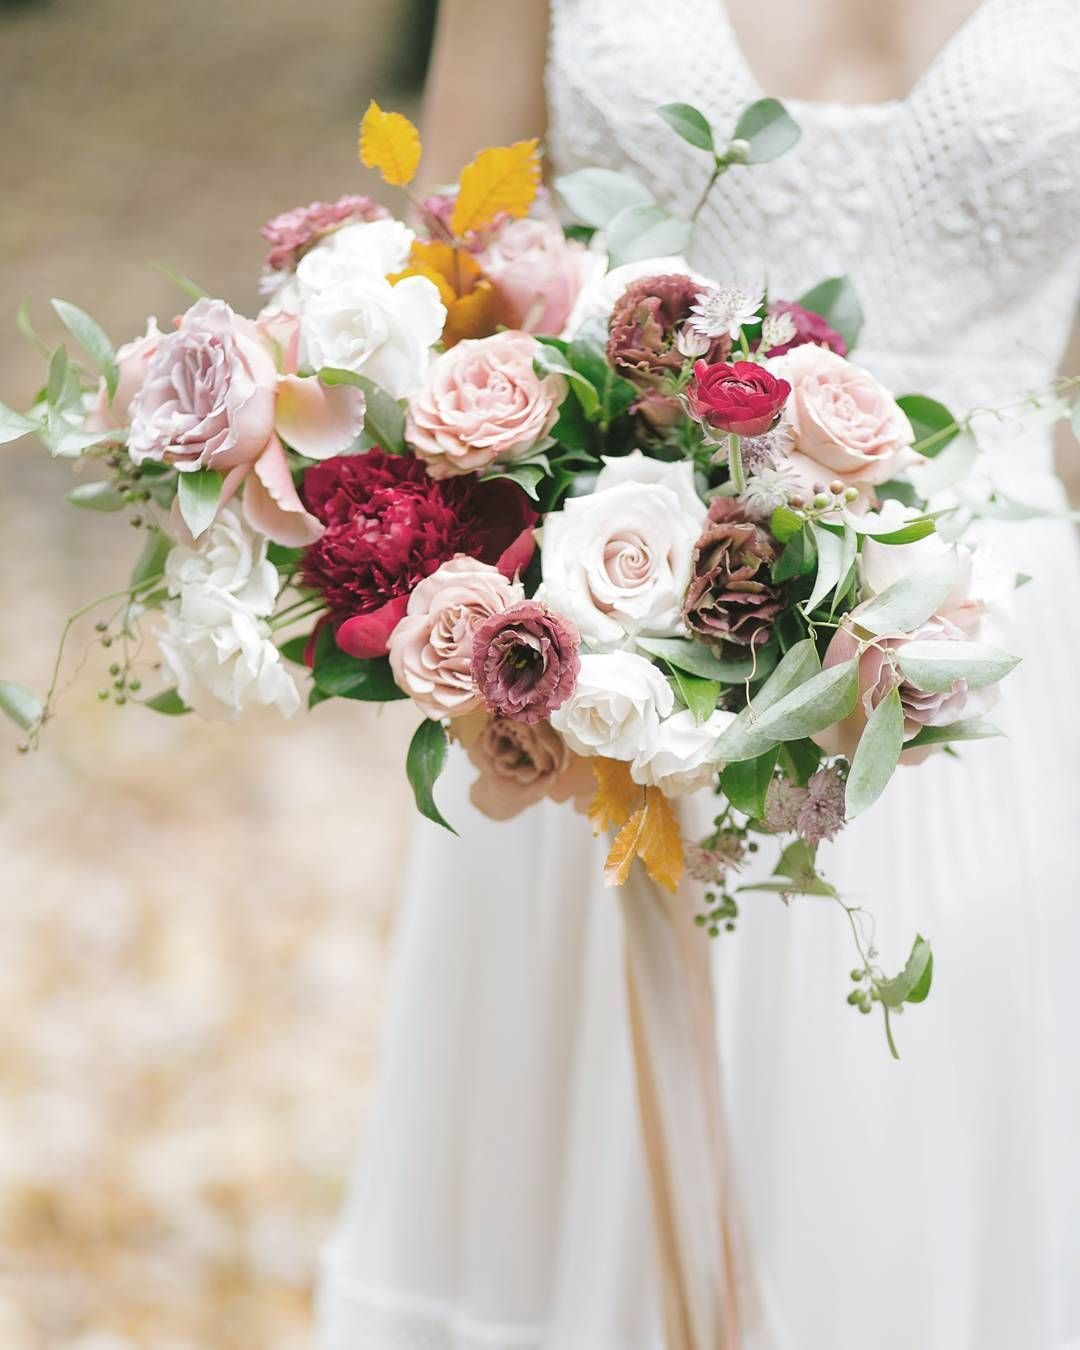 Beautiful Autumn-inspired bridal bouquet by Gavita Flora